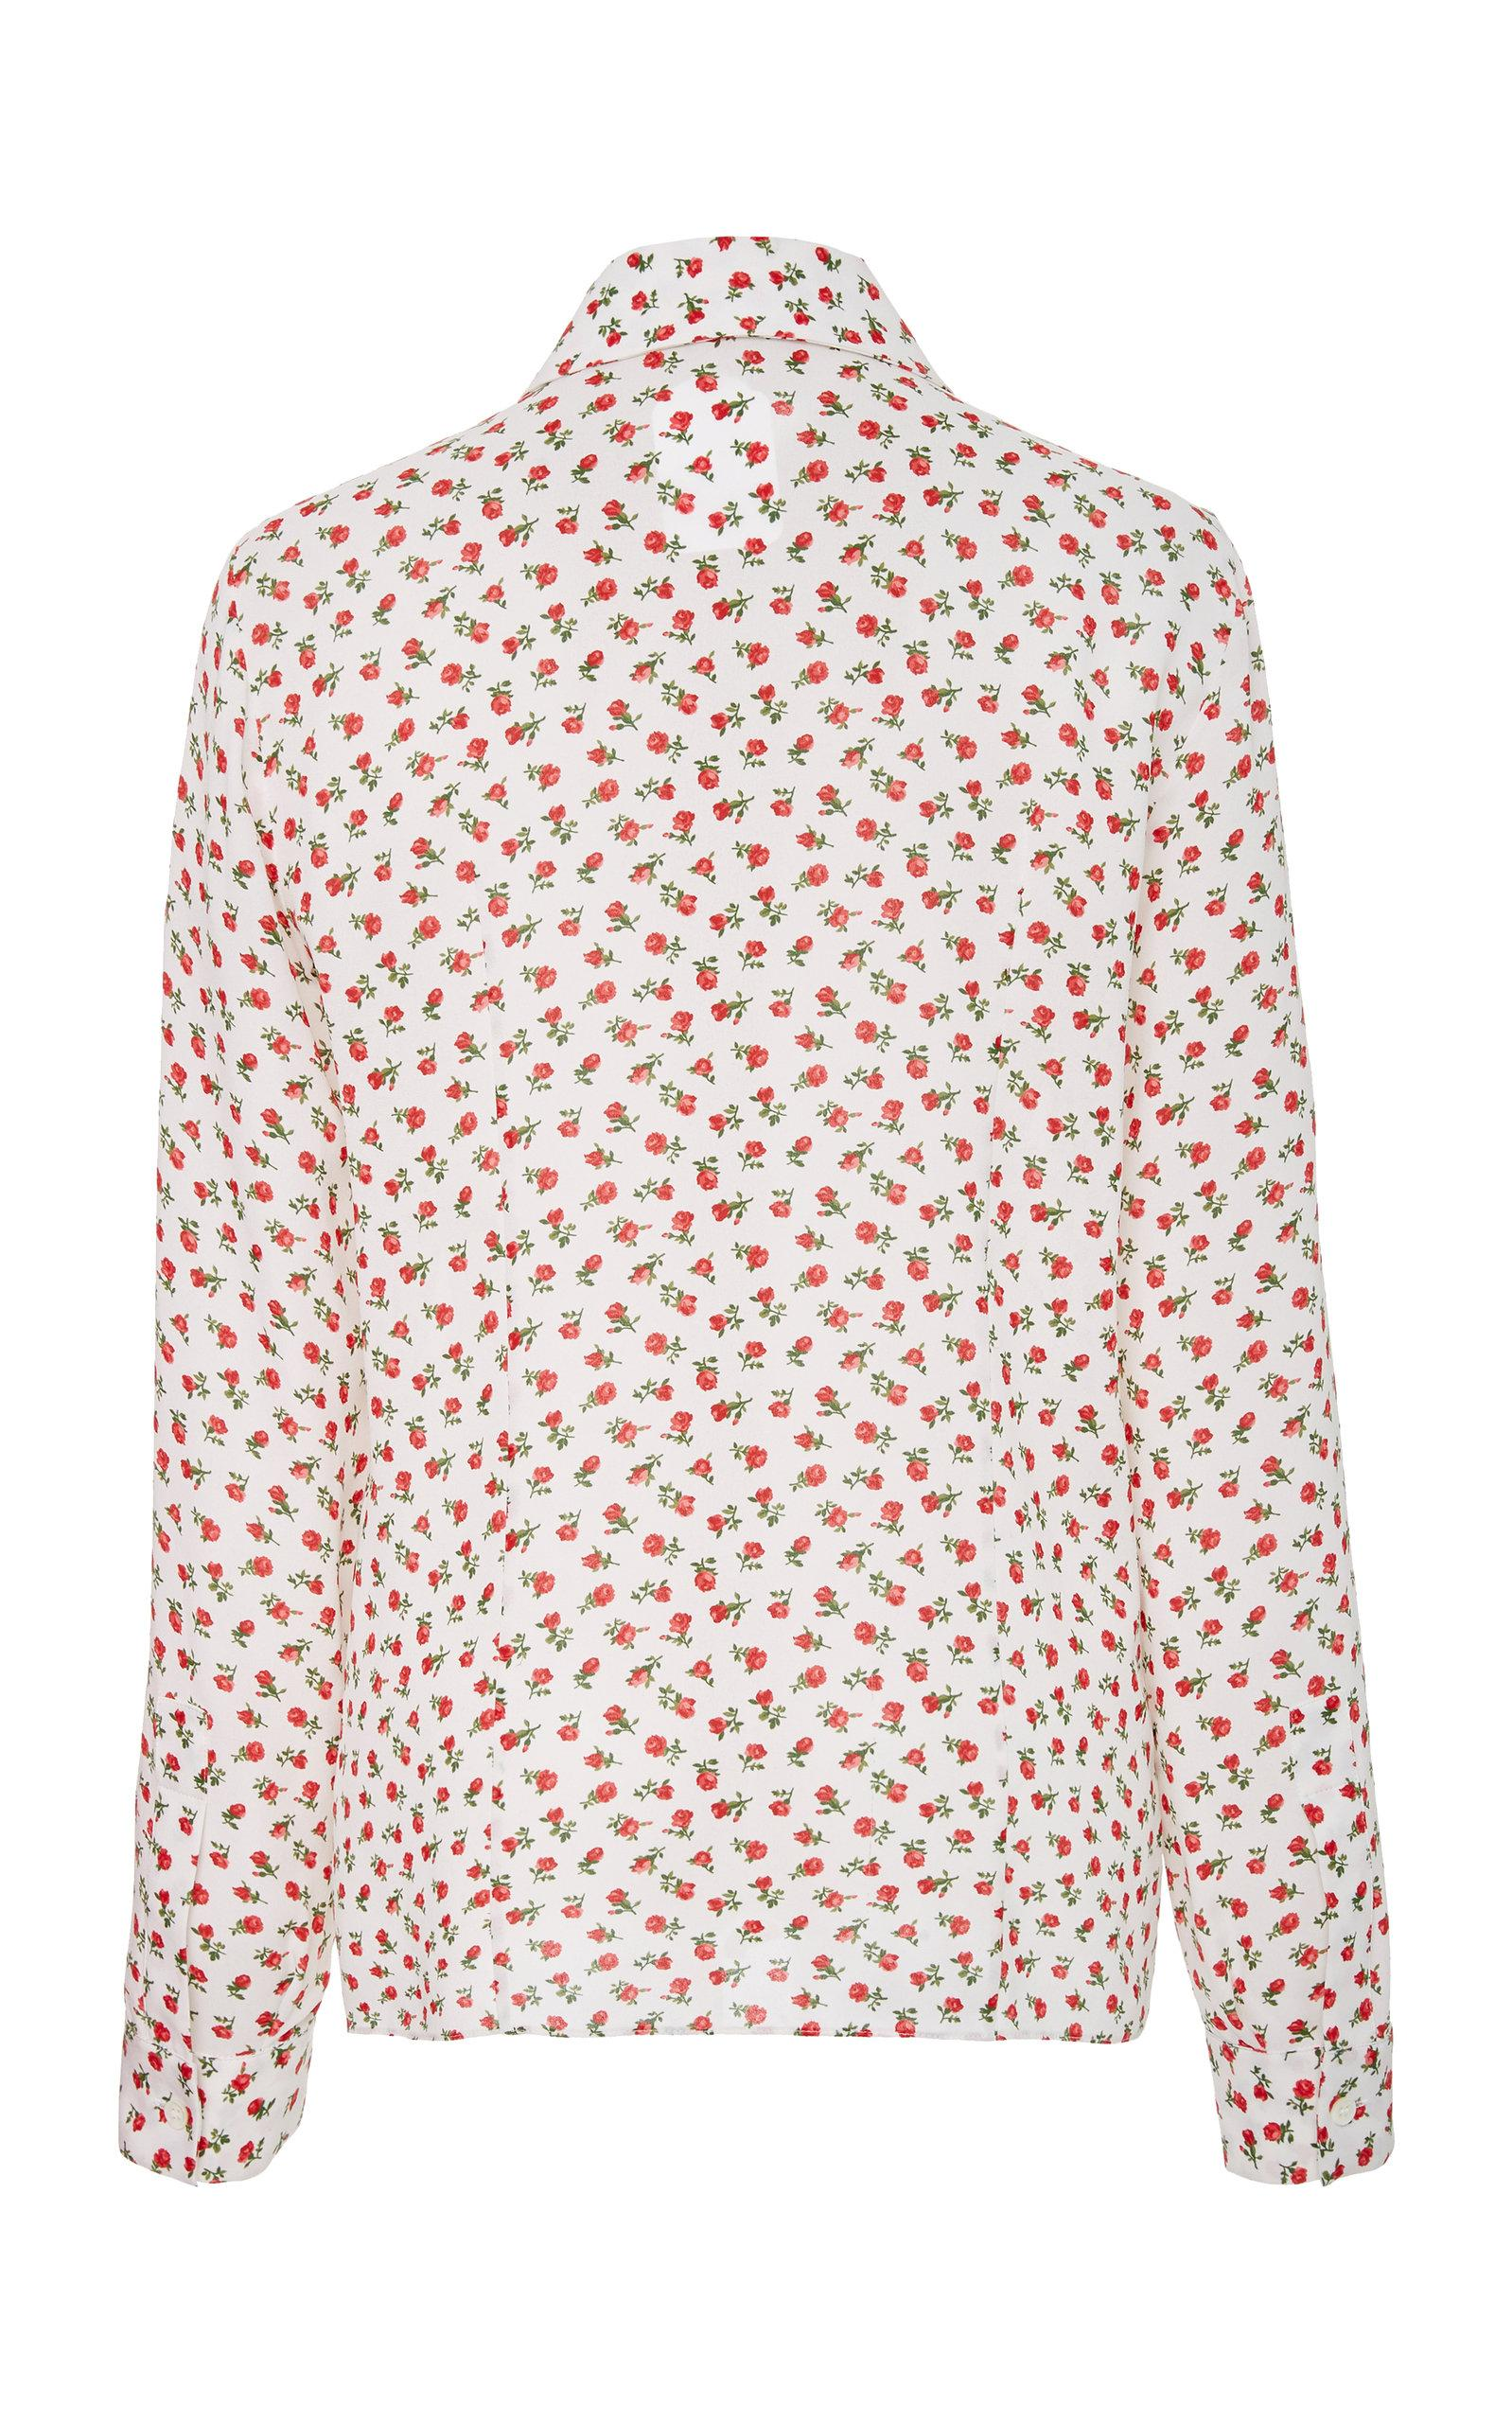 a520dc2438aad7 Lyst - Michael Kors Floral-print Silk Shirt in Pink